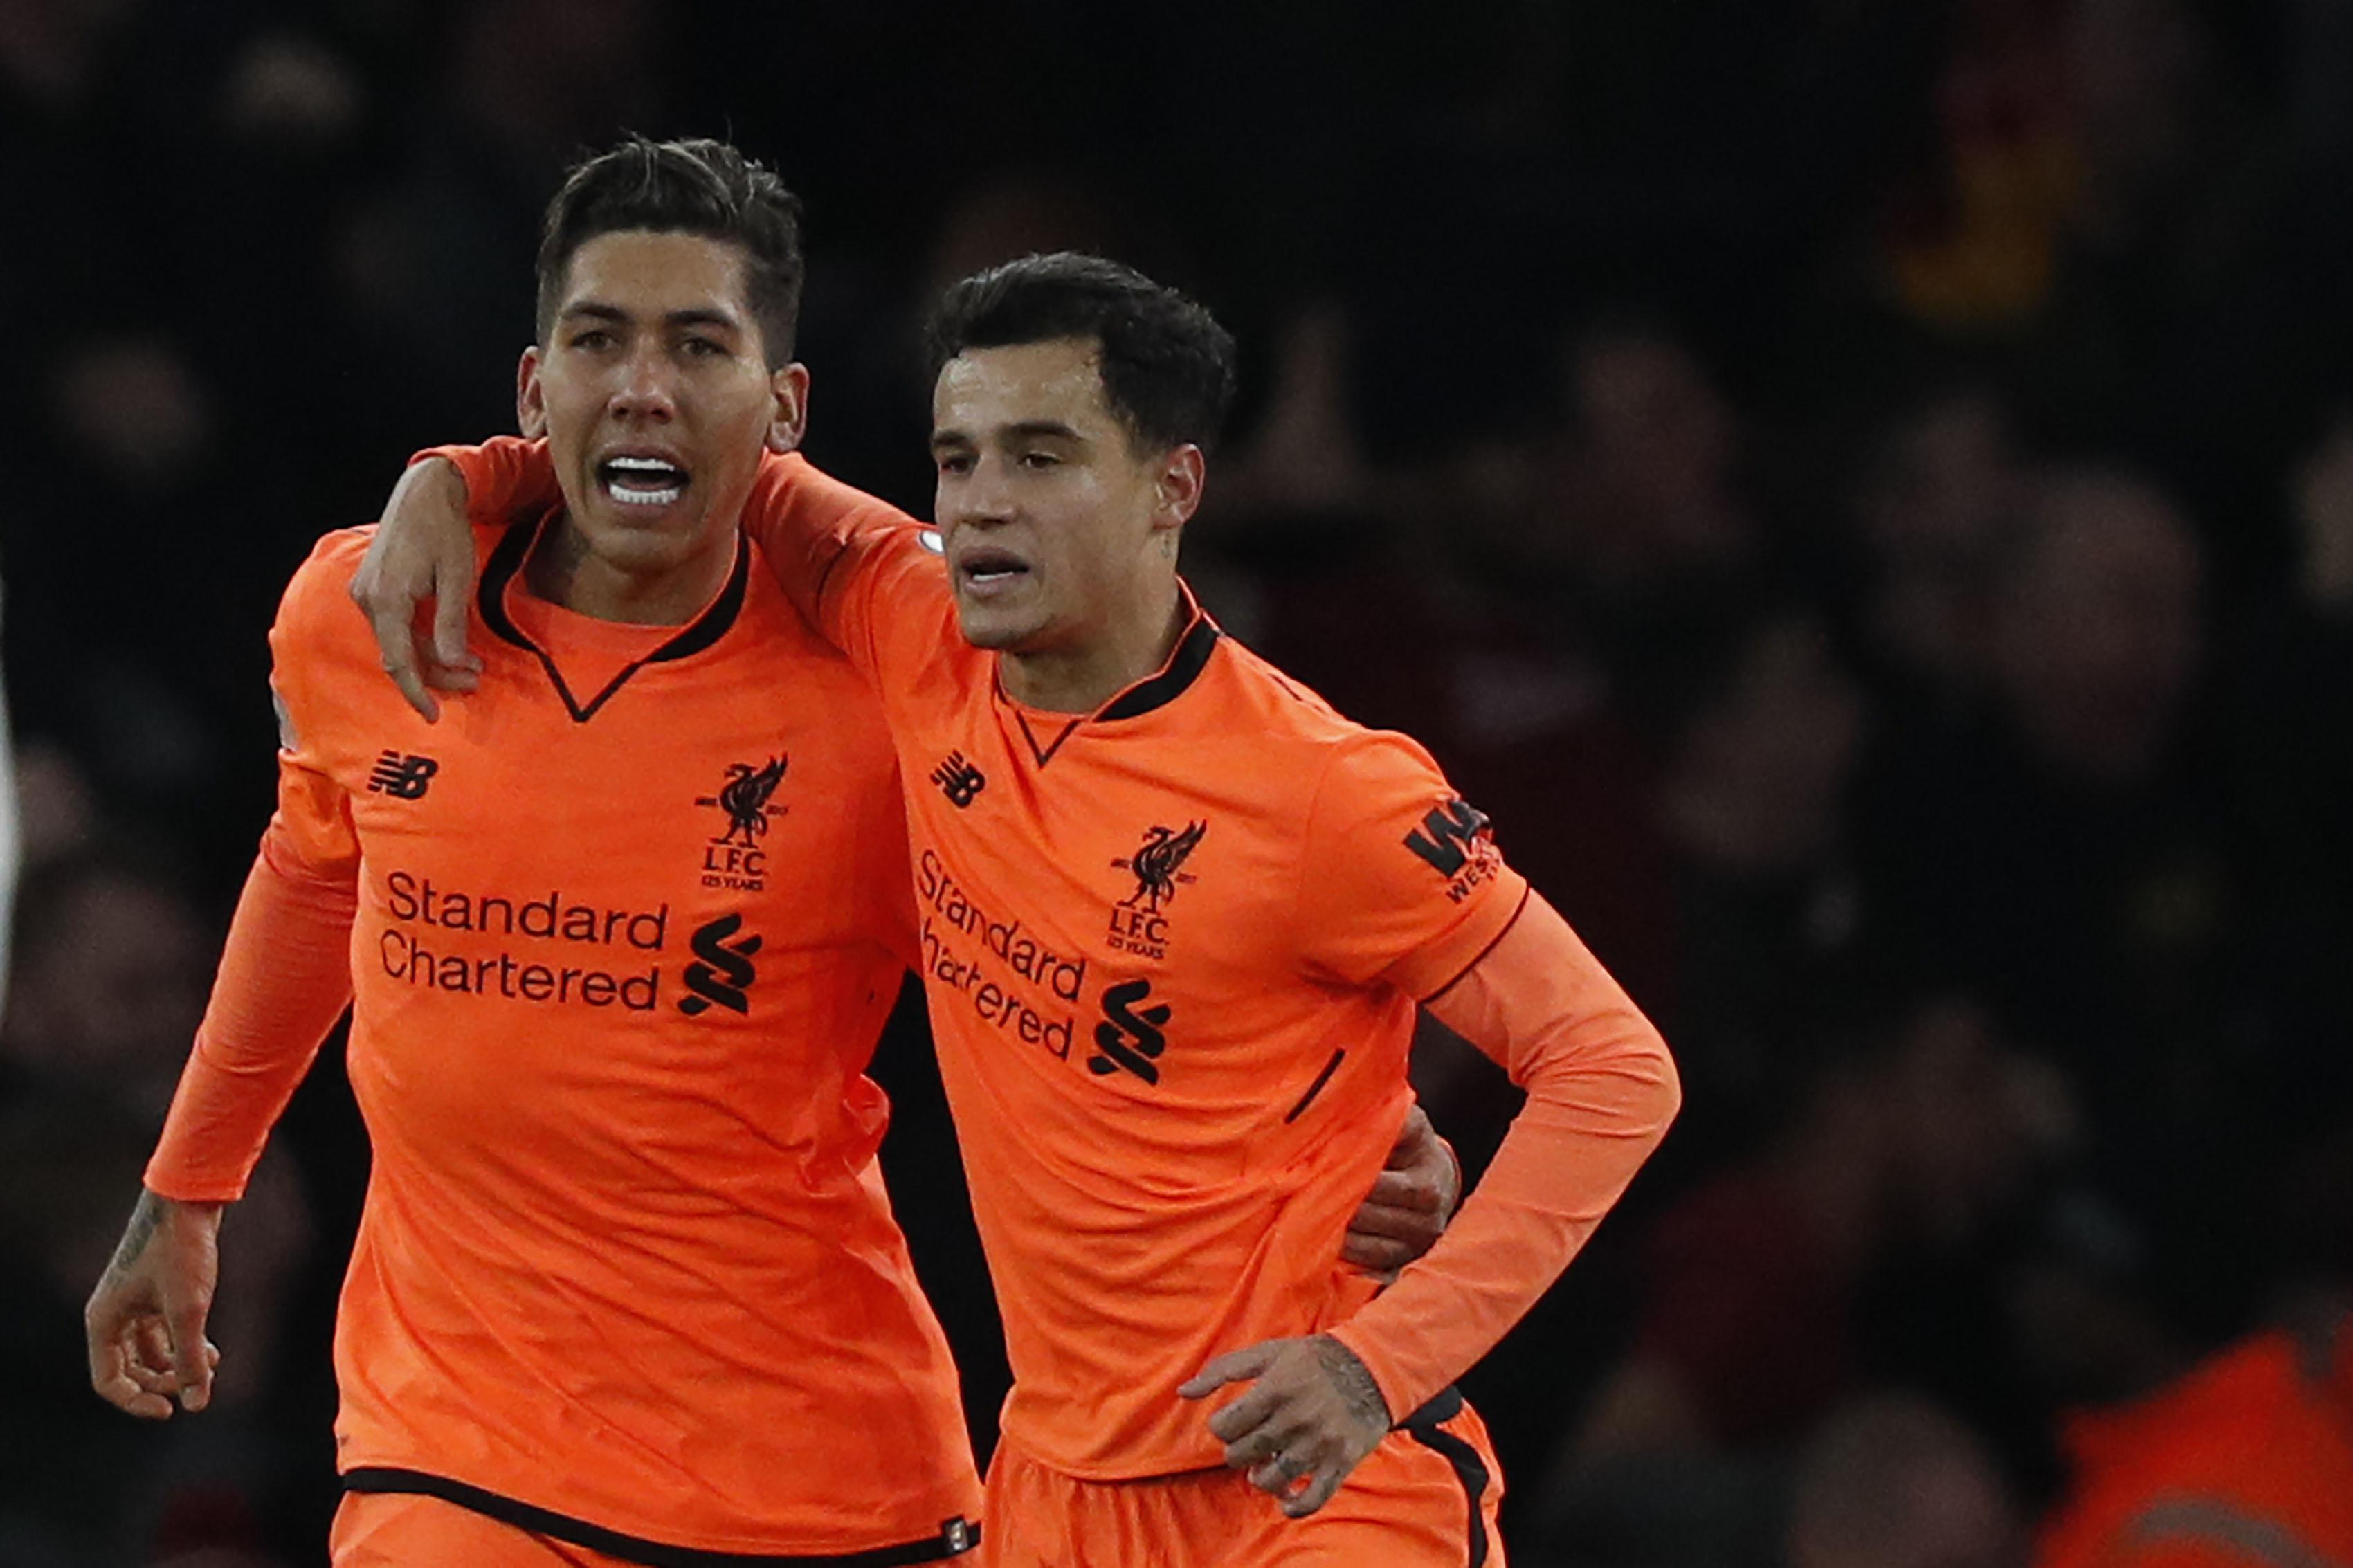 Firmino's influences supersedes Coutinho's